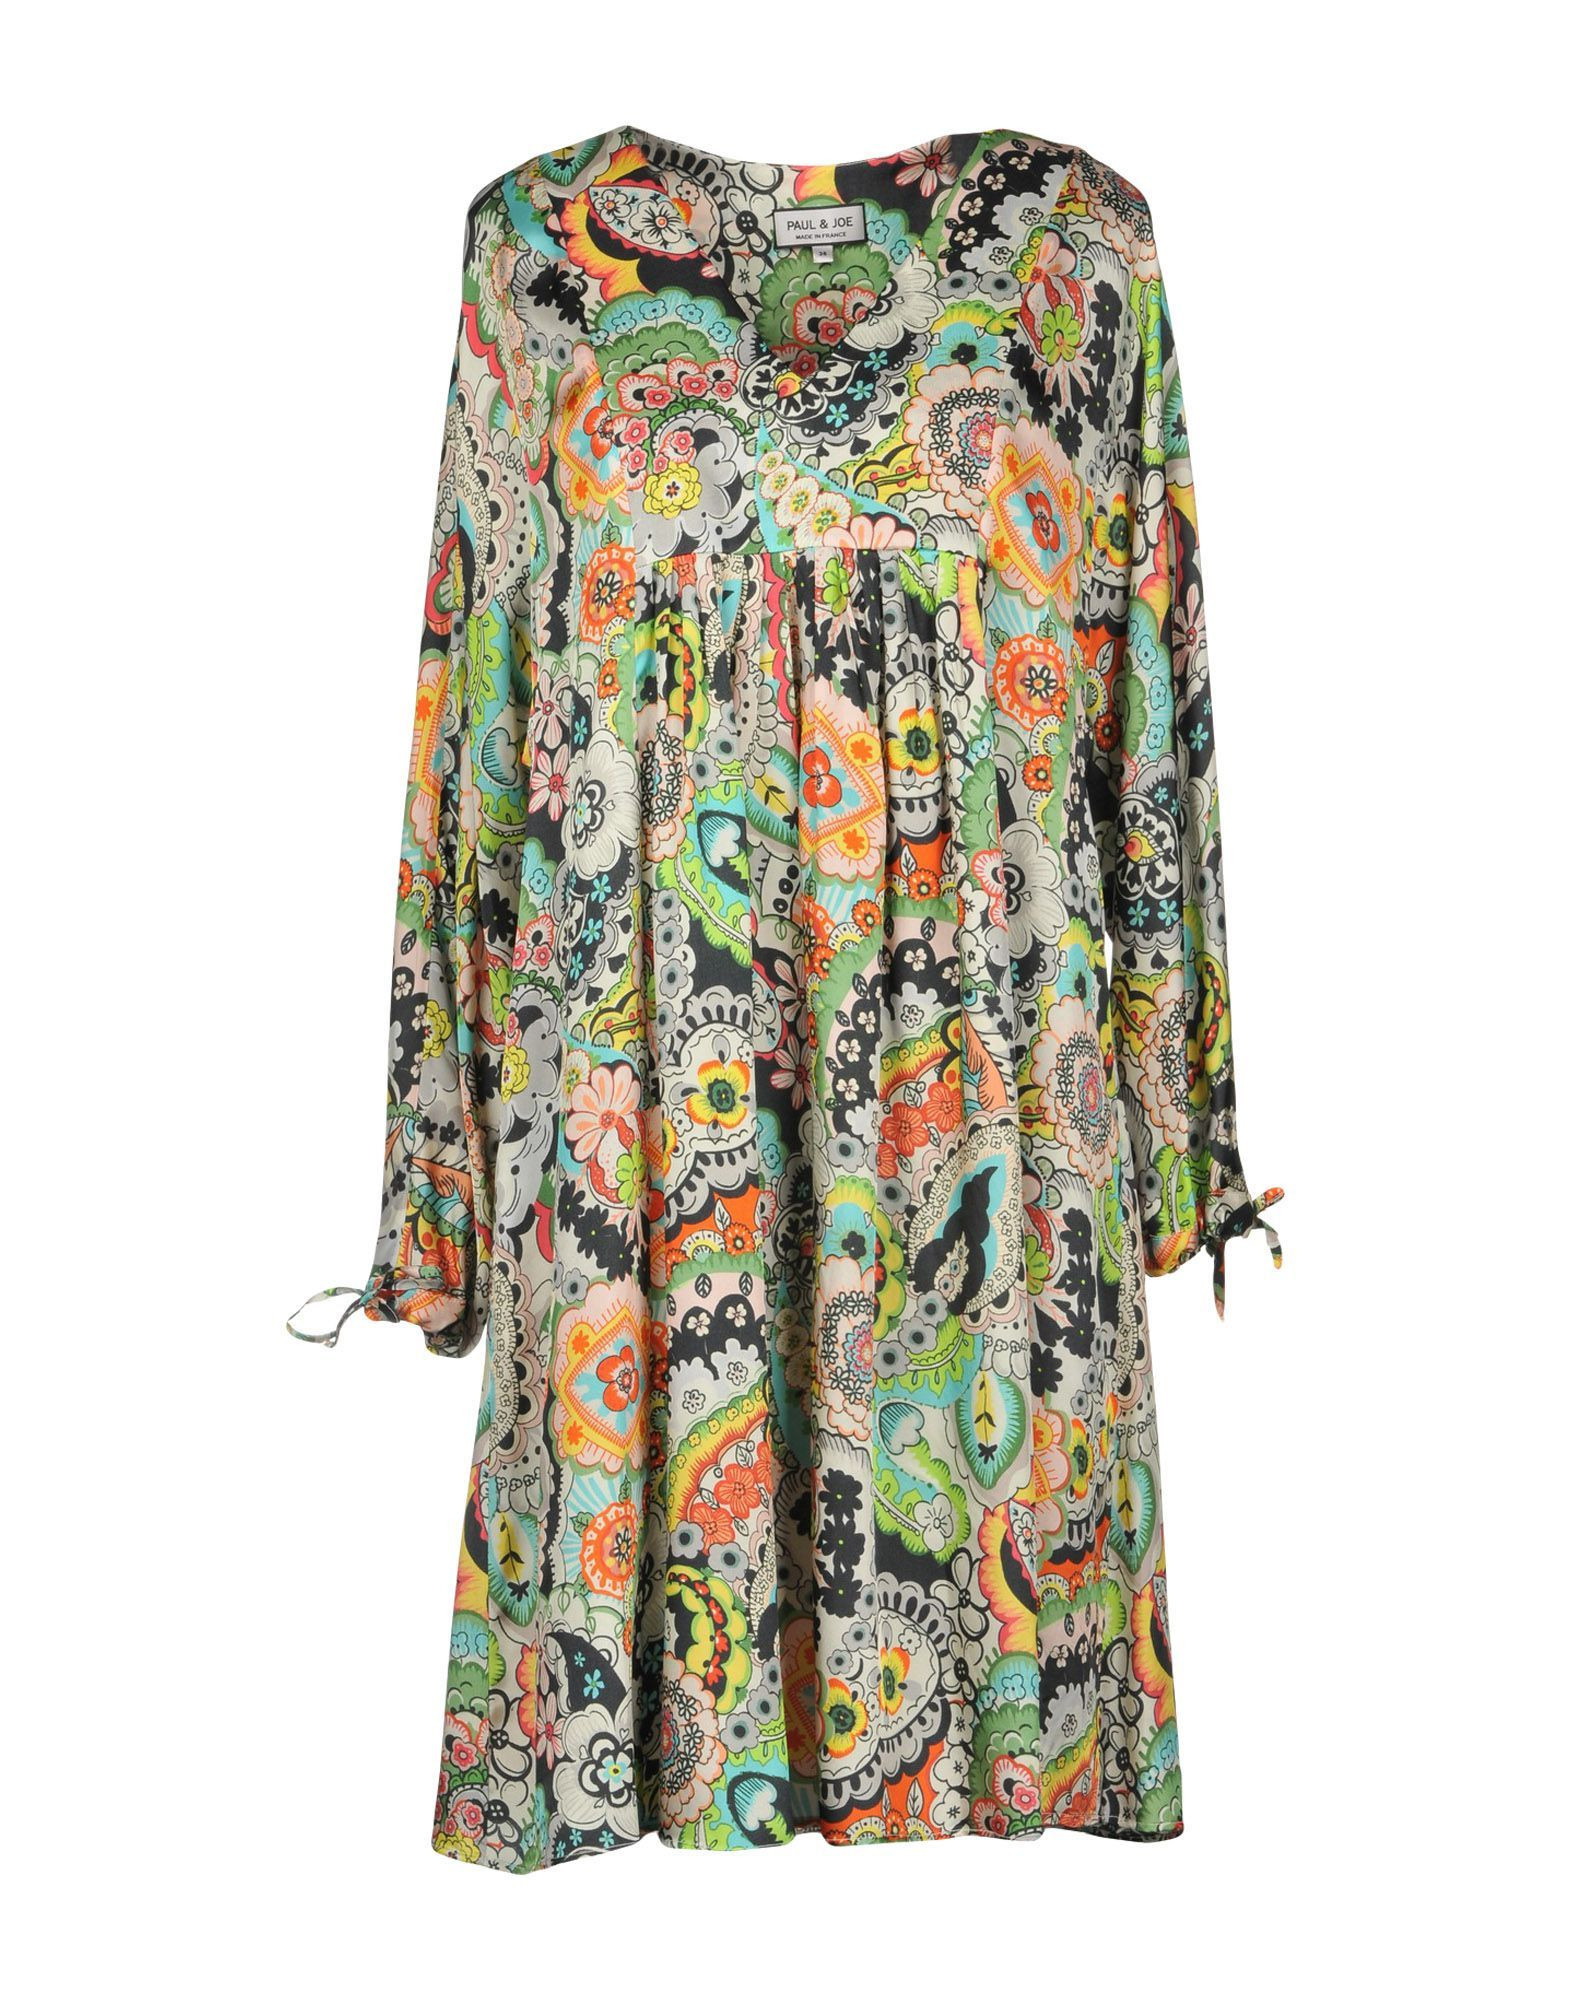 Paul & Joe Green Paisley Print Long Sleeve Dress